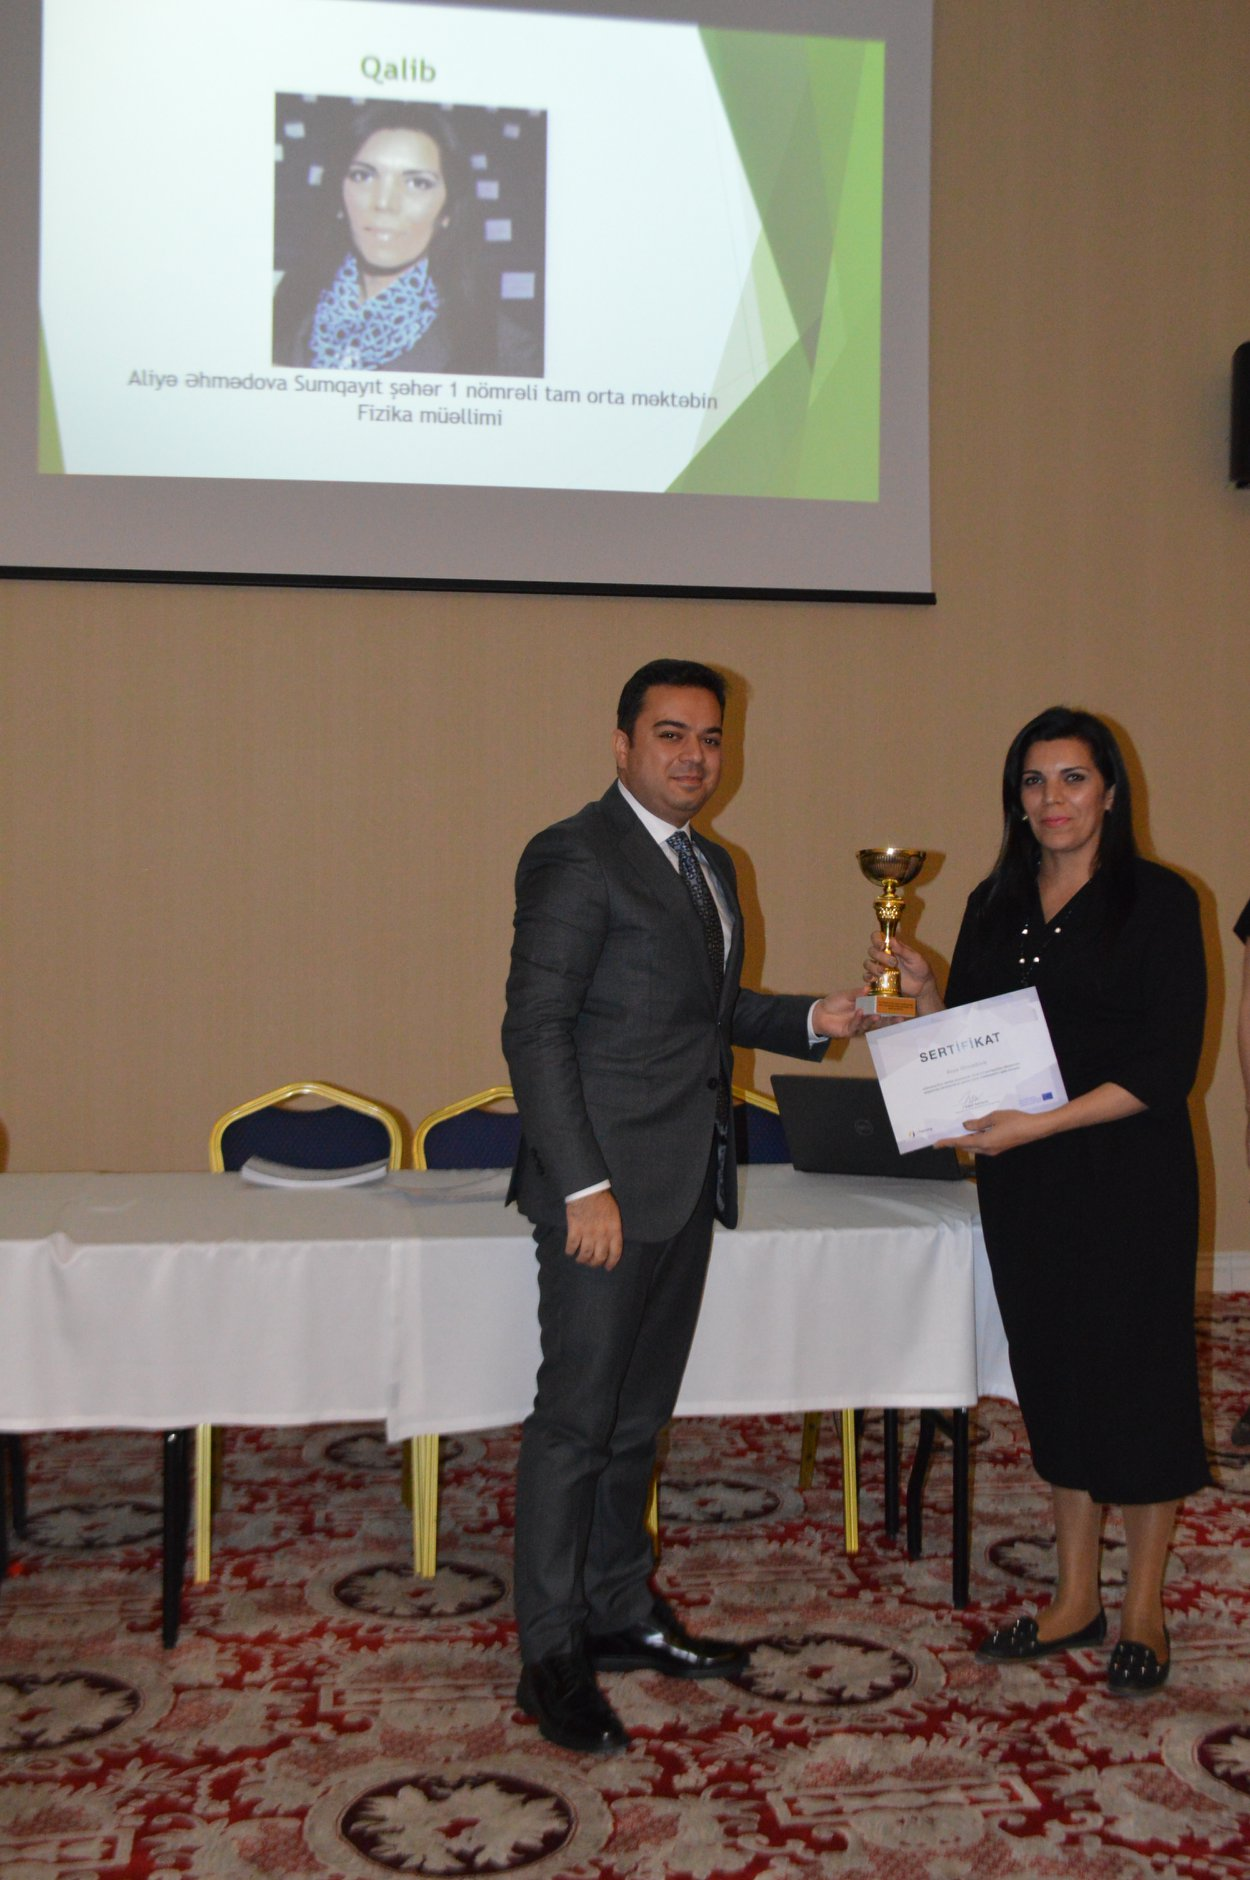 eTwinning Plus Azerbaijan held the first Local Competition